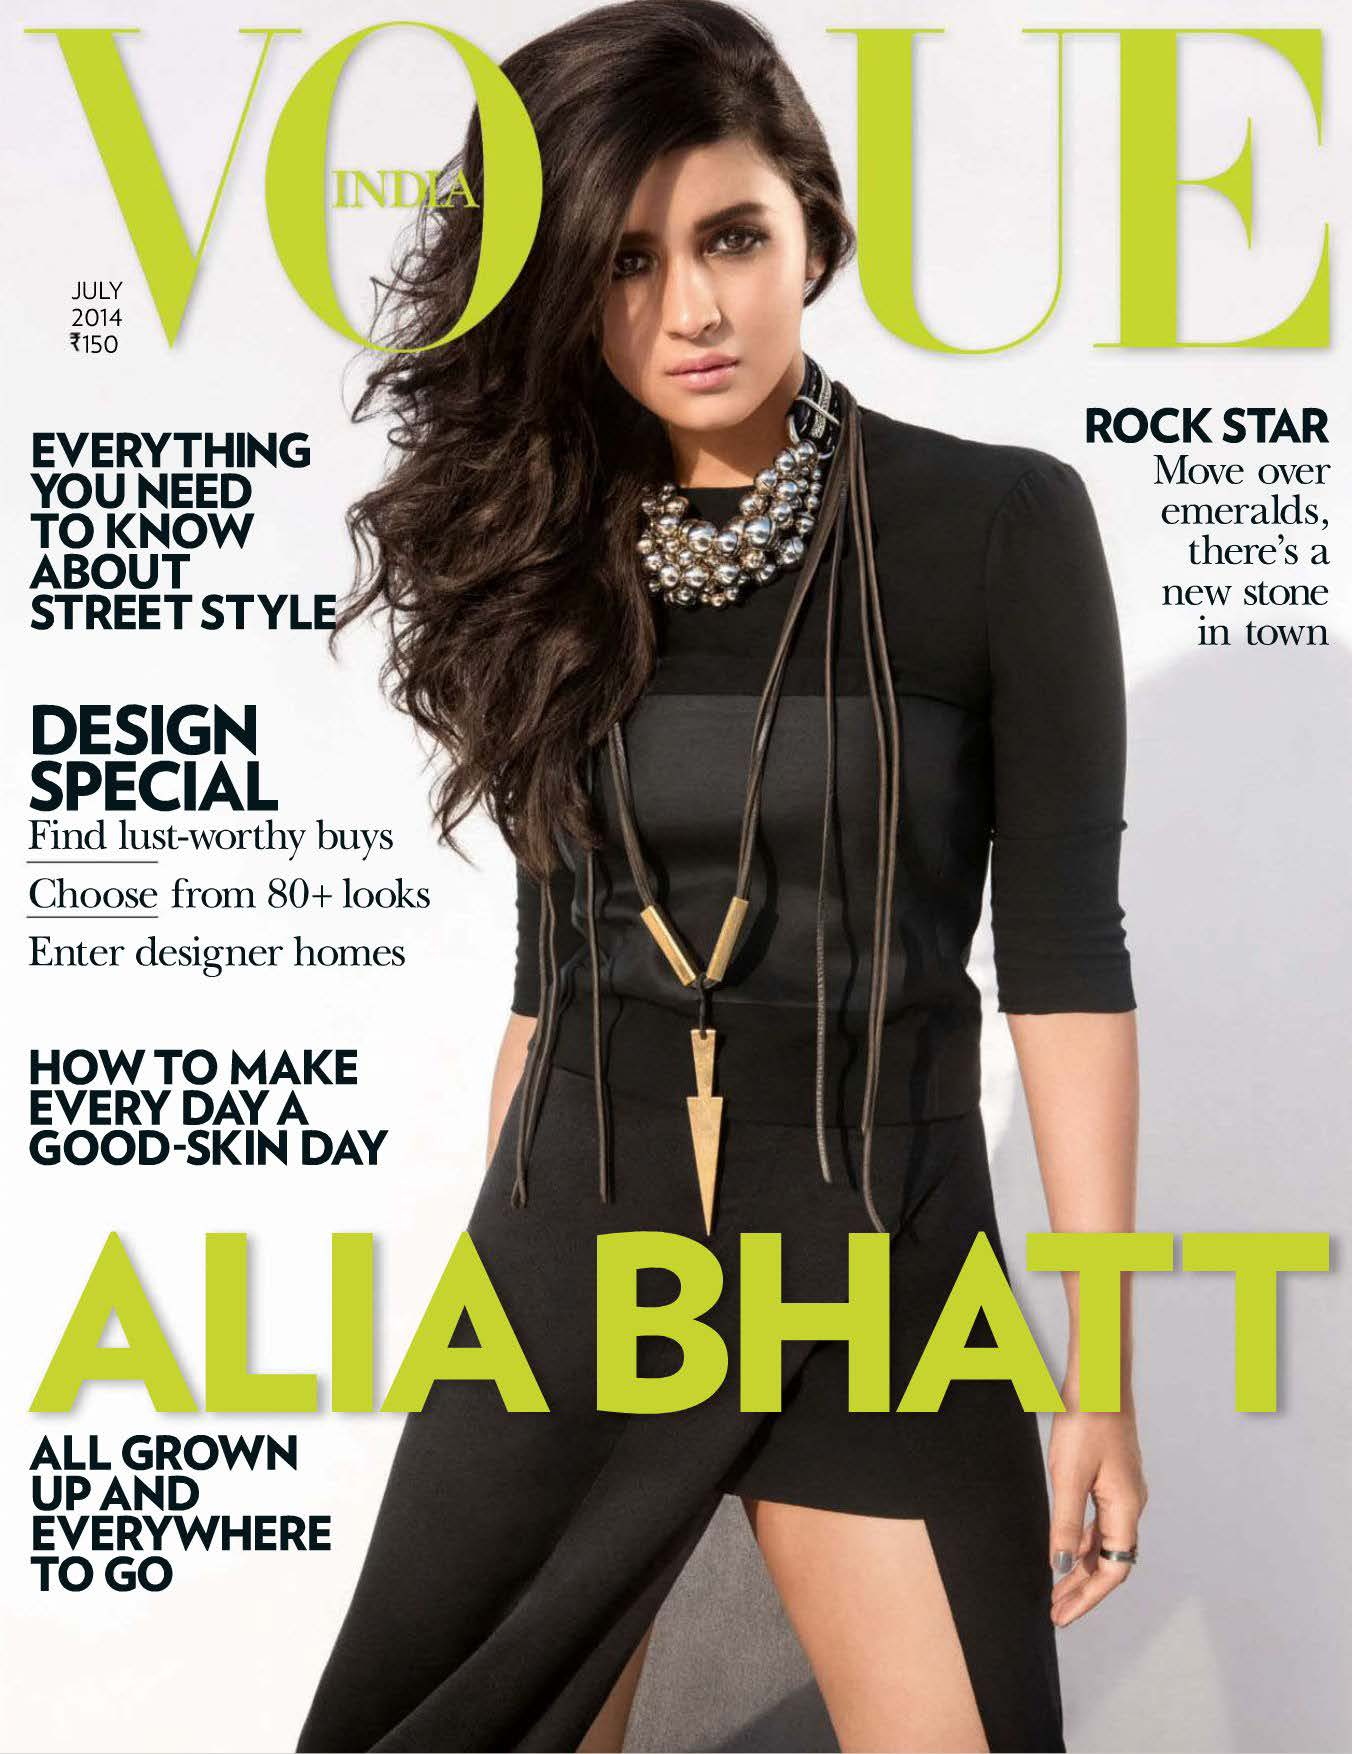 Alia Bhatt Vogue Magazine July 2014